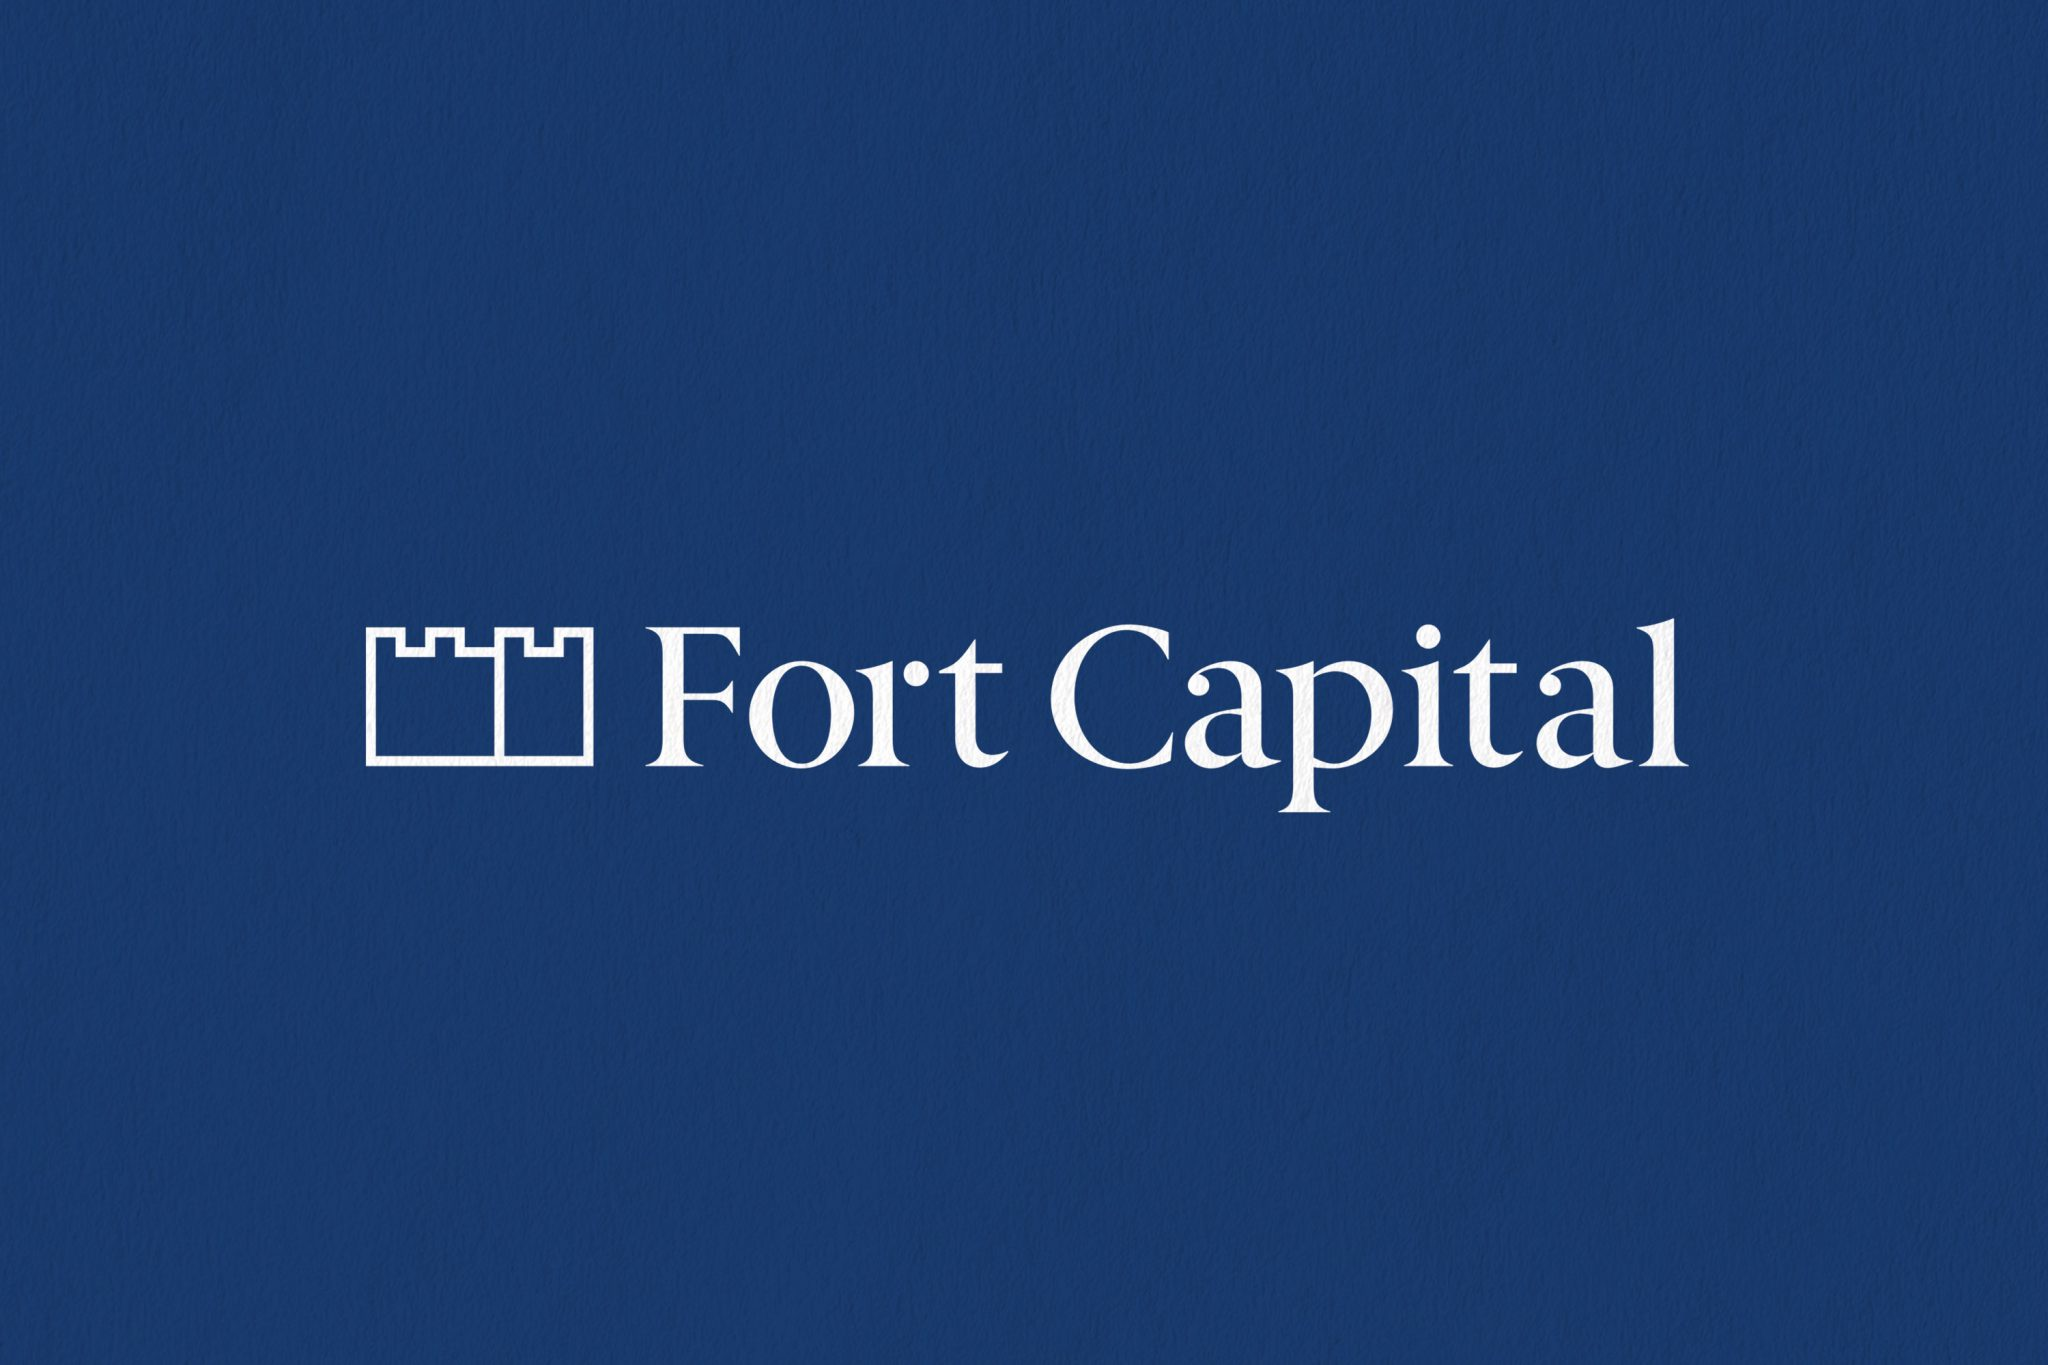 Fort capital logo wordmark 2048x1365